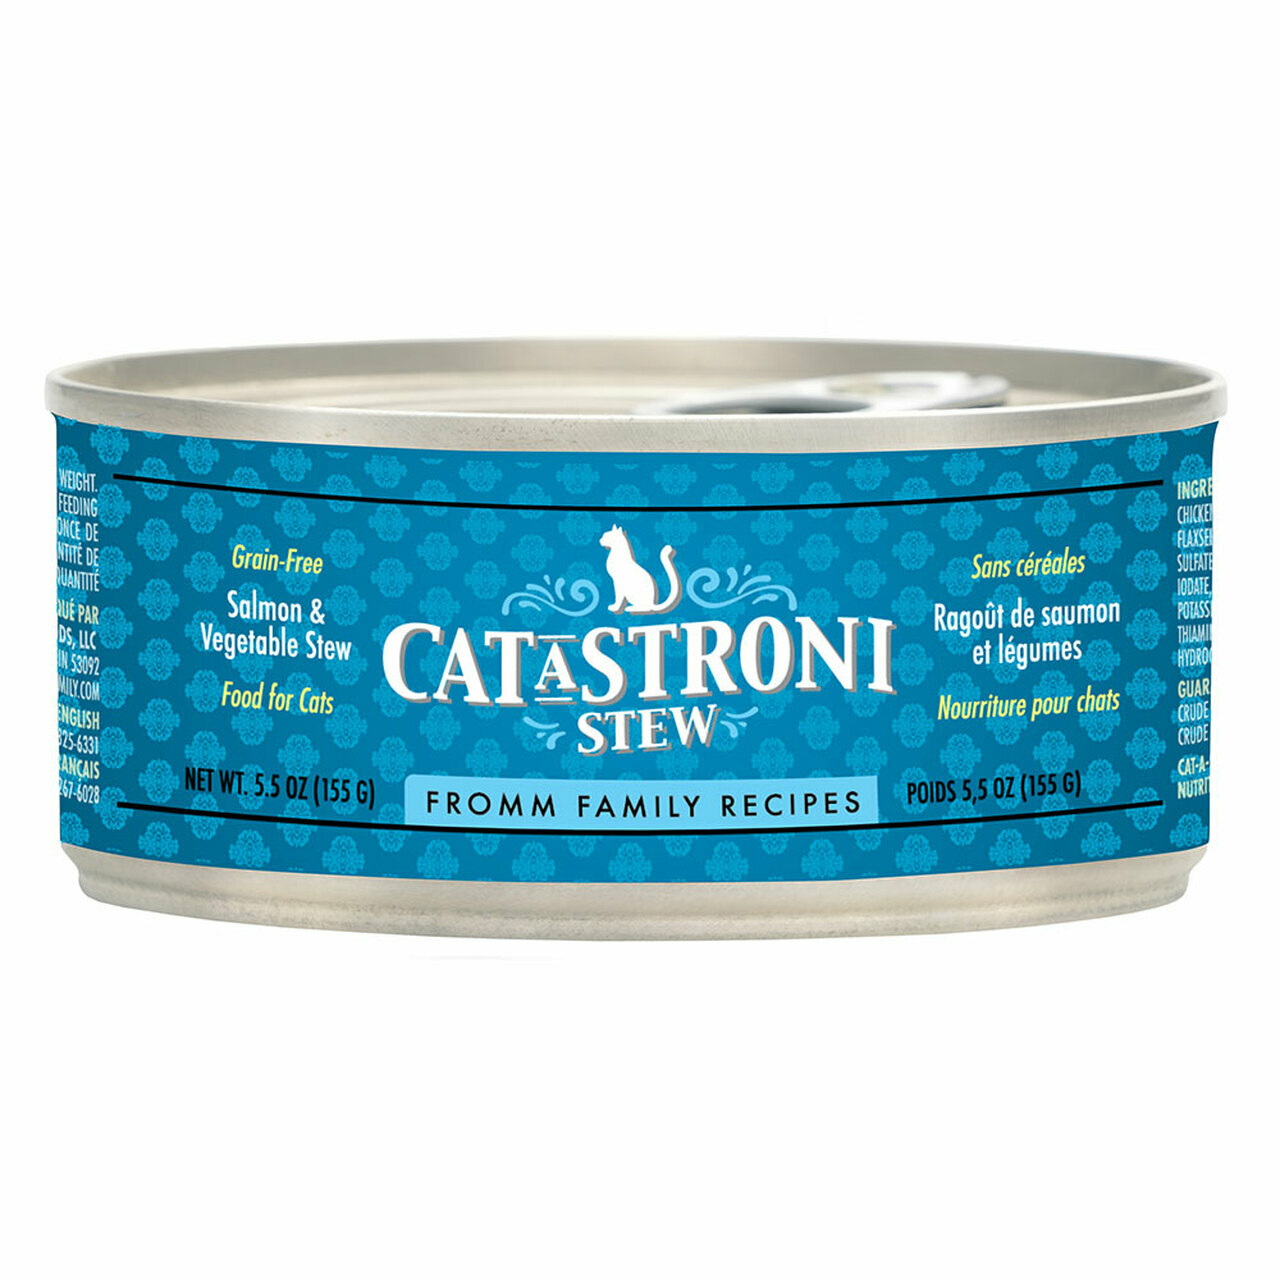 Fromm Family Recipes Cat-A-Stroni Stew Salmon & Vegetable Stew Canned Cat Food, 5.5-oz